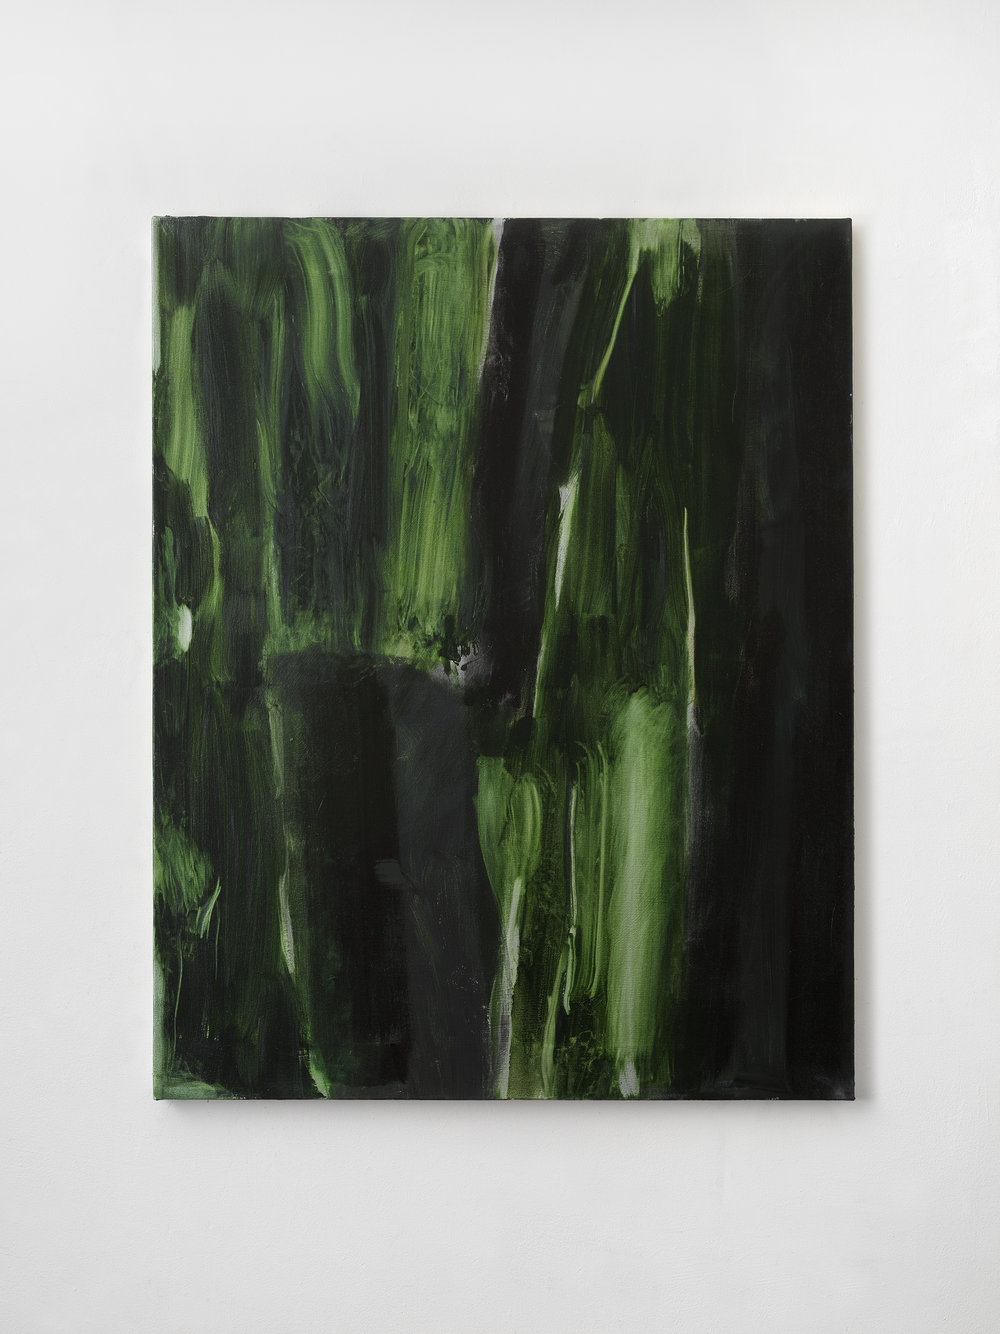 Green Screen #4 , 2018 43 x 34 inches, Oil on canvas